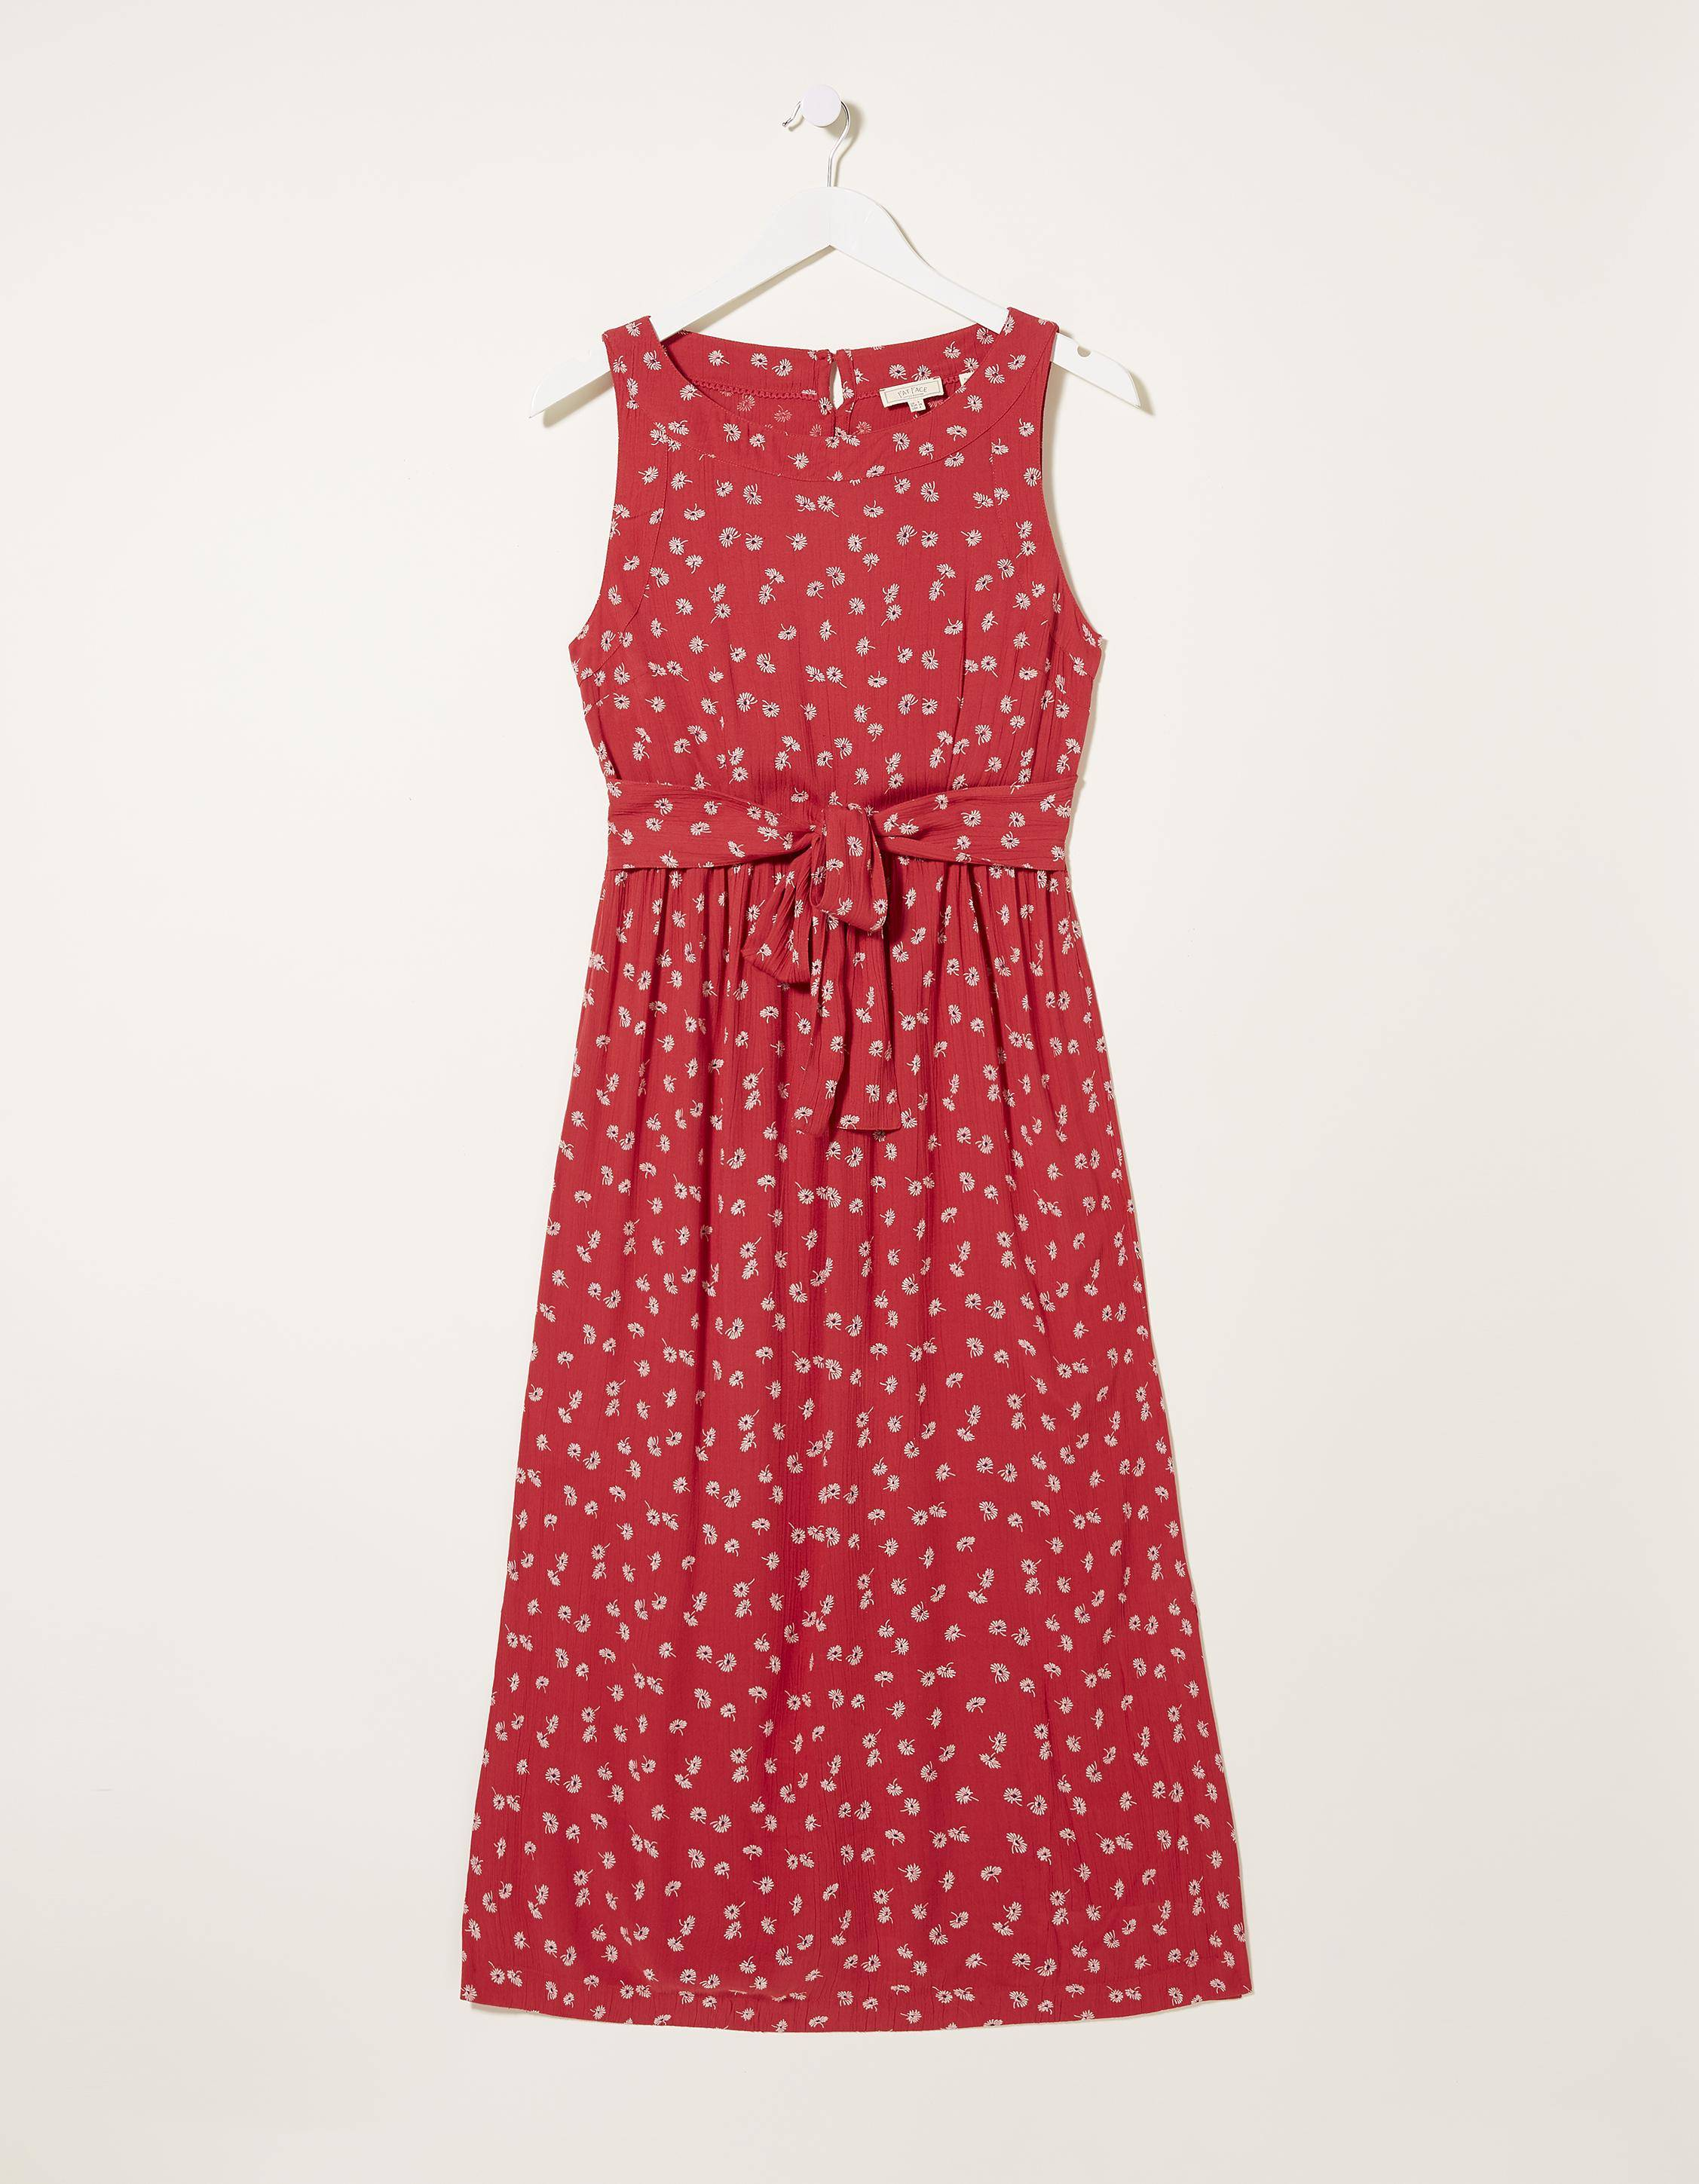 Fat Face Laurie Daisy Midi Dress  - Size: 6